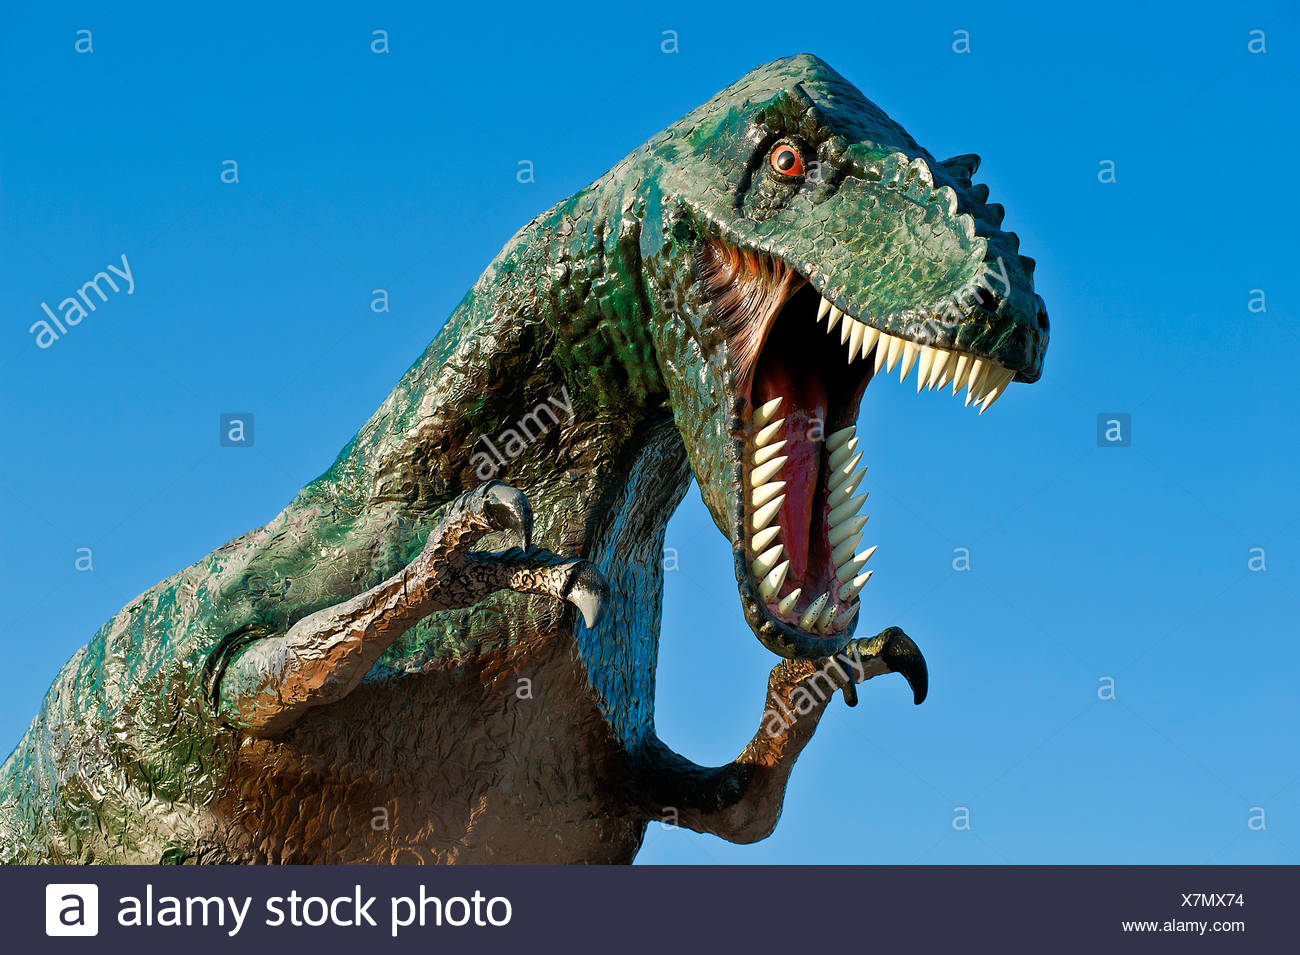 Replica of a dinosaur. - Stock Image